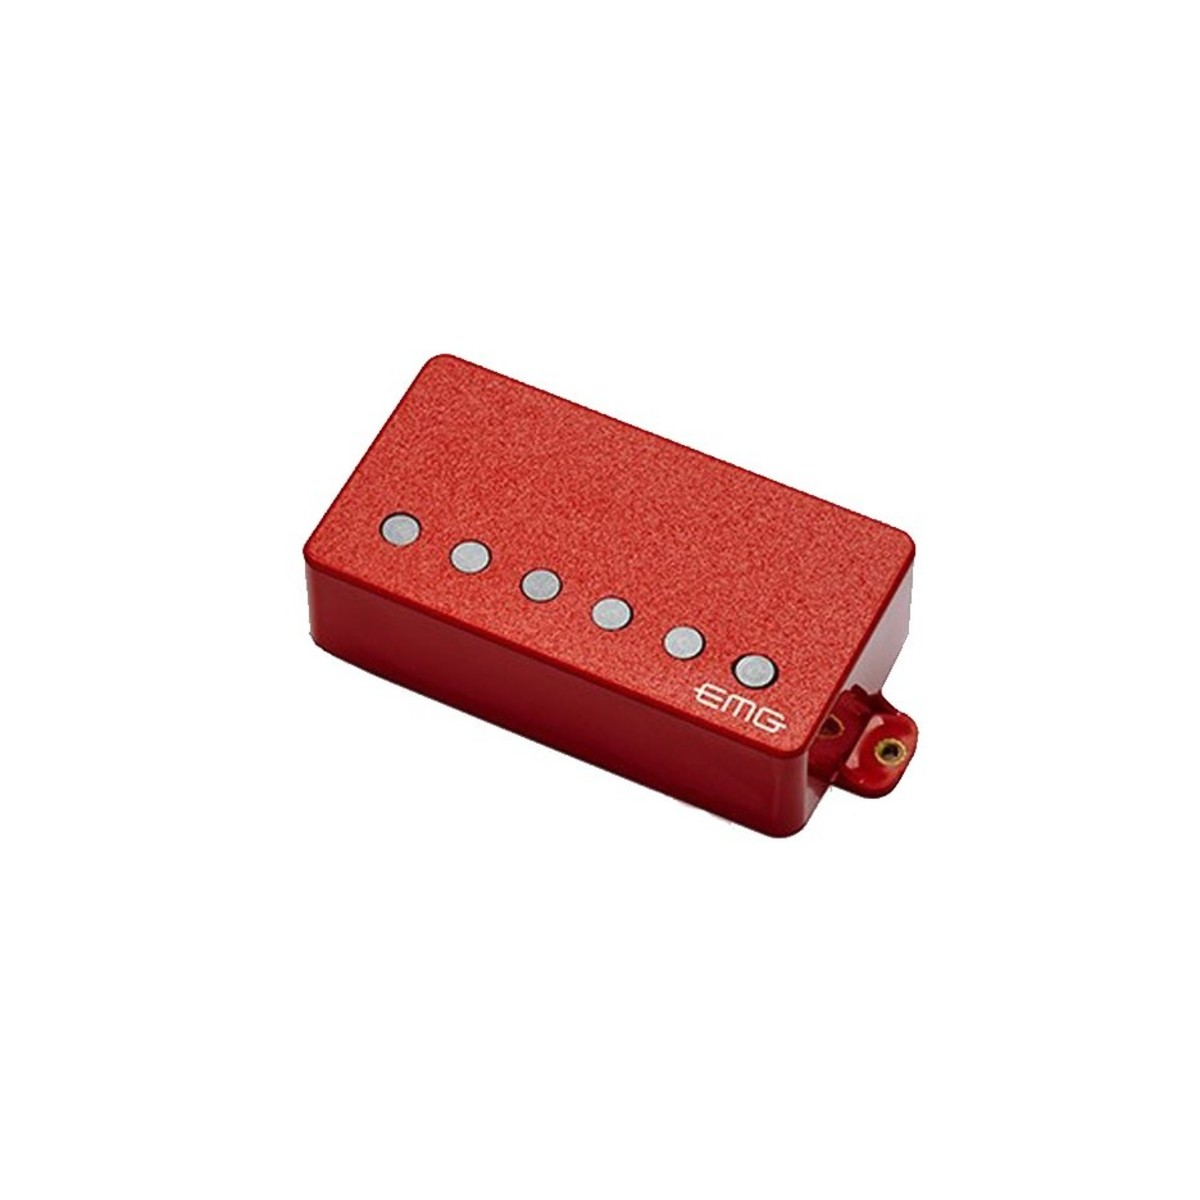 emg 57 6 string humbucker pickup red at gear4music. Black Bedroom Furniture Sets. Home Design Ideas